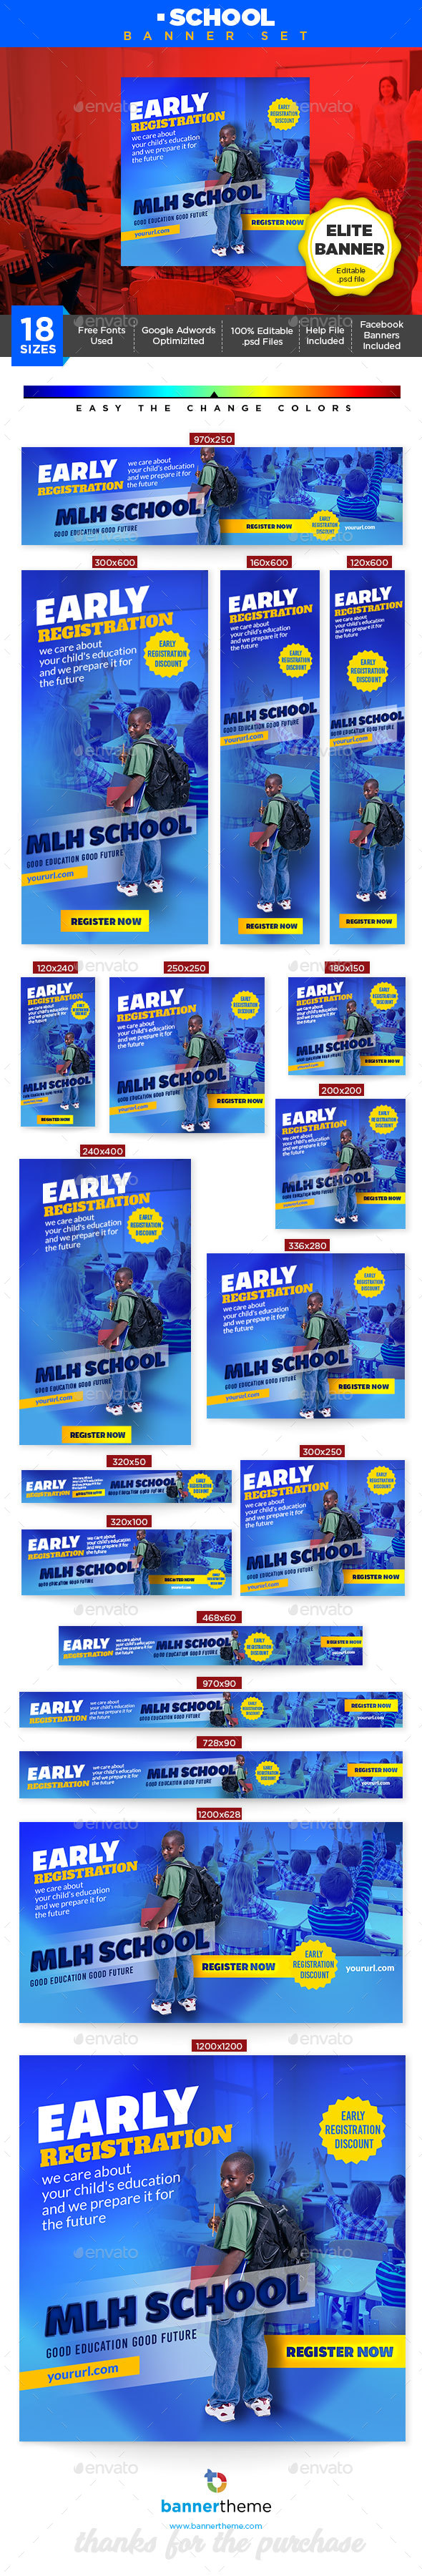 School Banner - Banners & Ads Web Elements